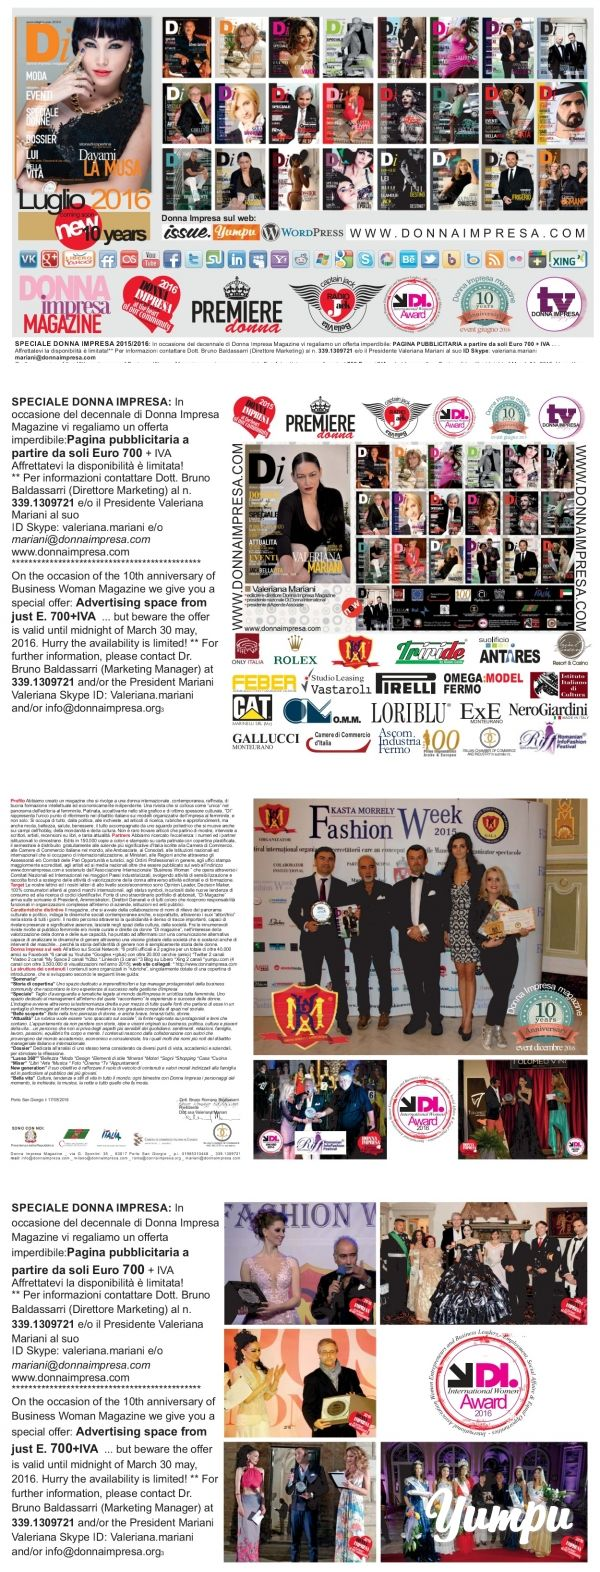 DONNA IMPRESA magazine 2016 - Magazine with 4 pages: *Il PREMIO INTERNAZIONALE…